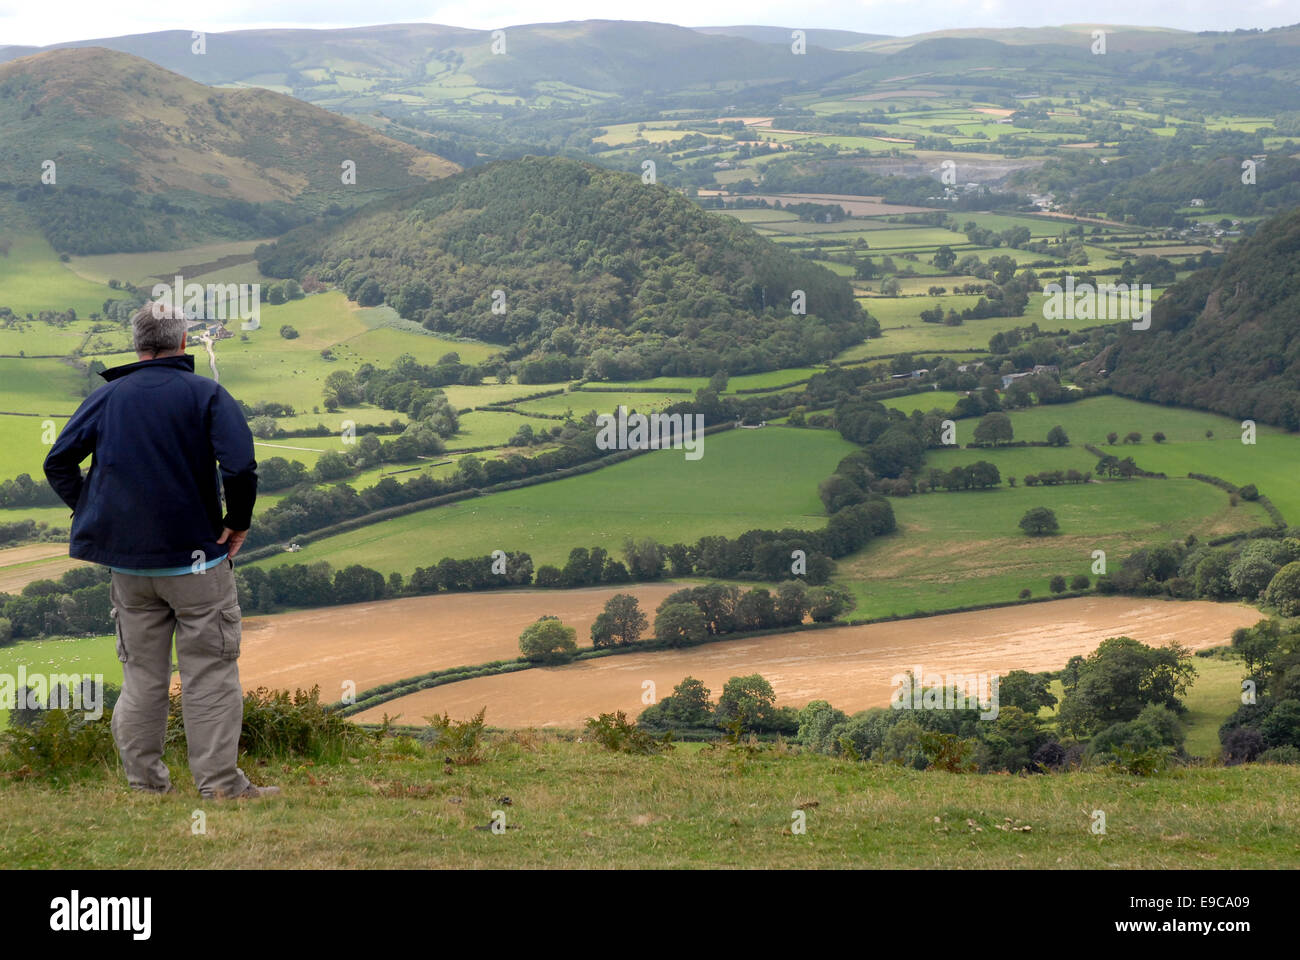 A man admires the landscape on the Herefordshire/Powys border near Kington. - Stock Image